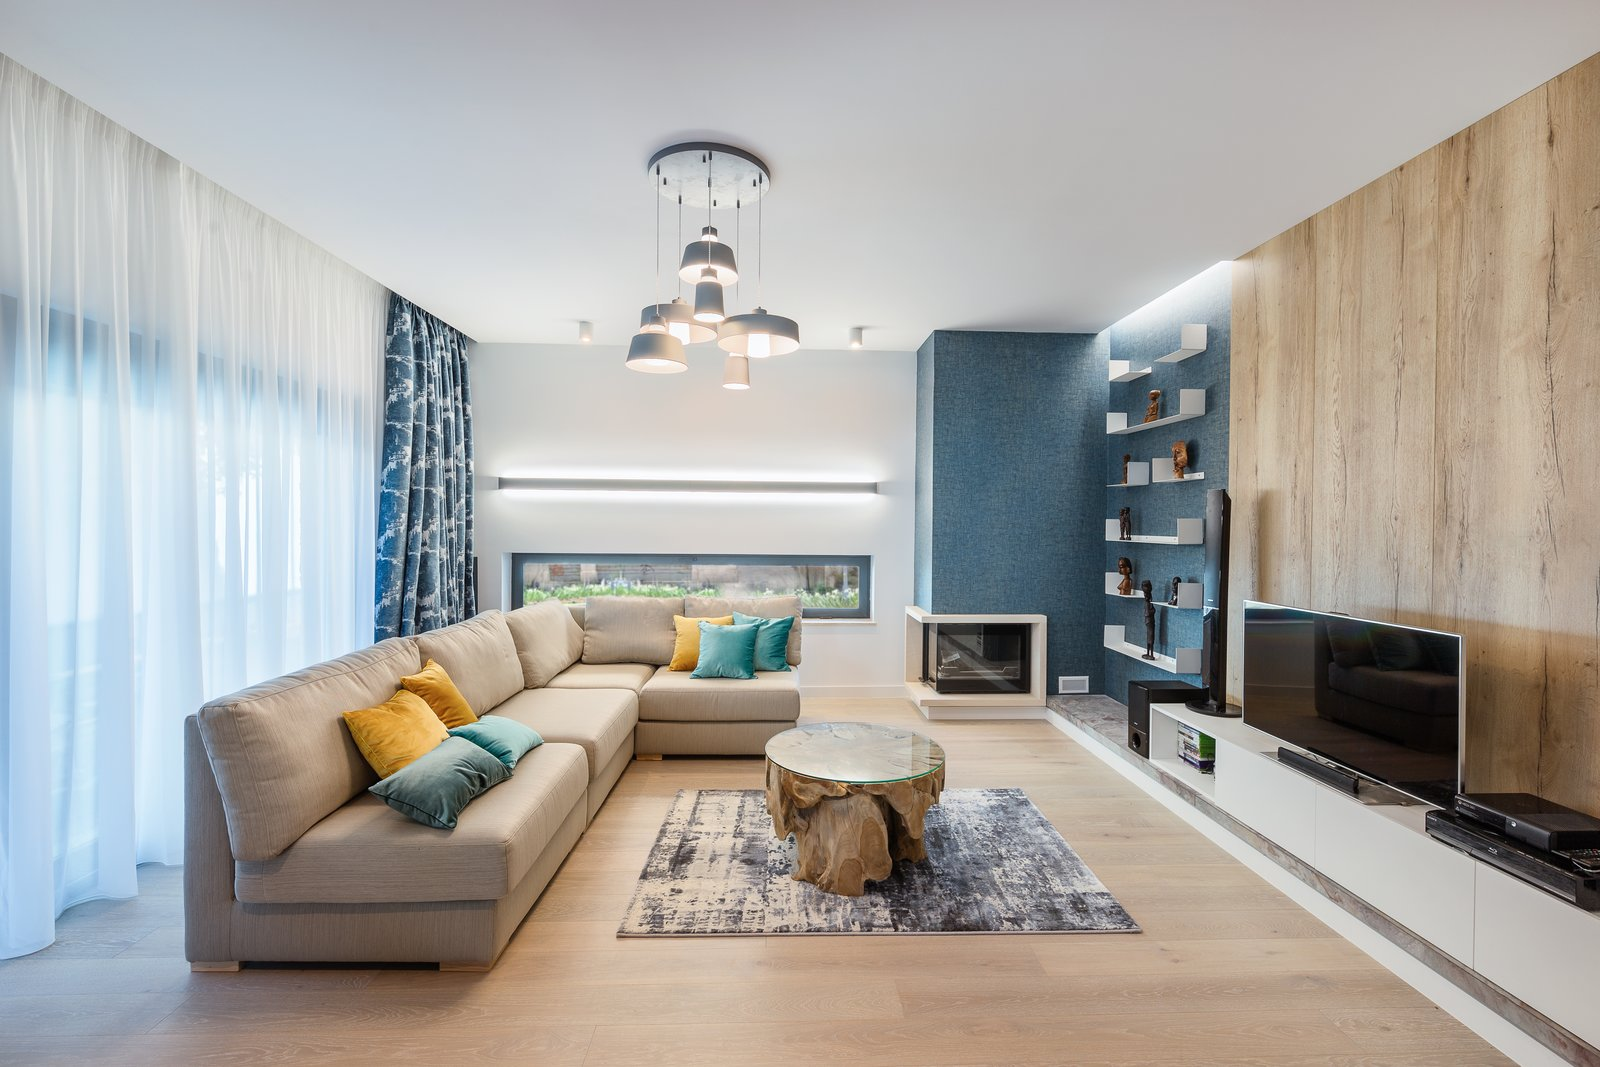 Living Room, Ceiling Lighting, Sofa, Corner Fireplace, Coffee Tables, Bookcase, and Light Hardwood Floor  From Sky to Sea